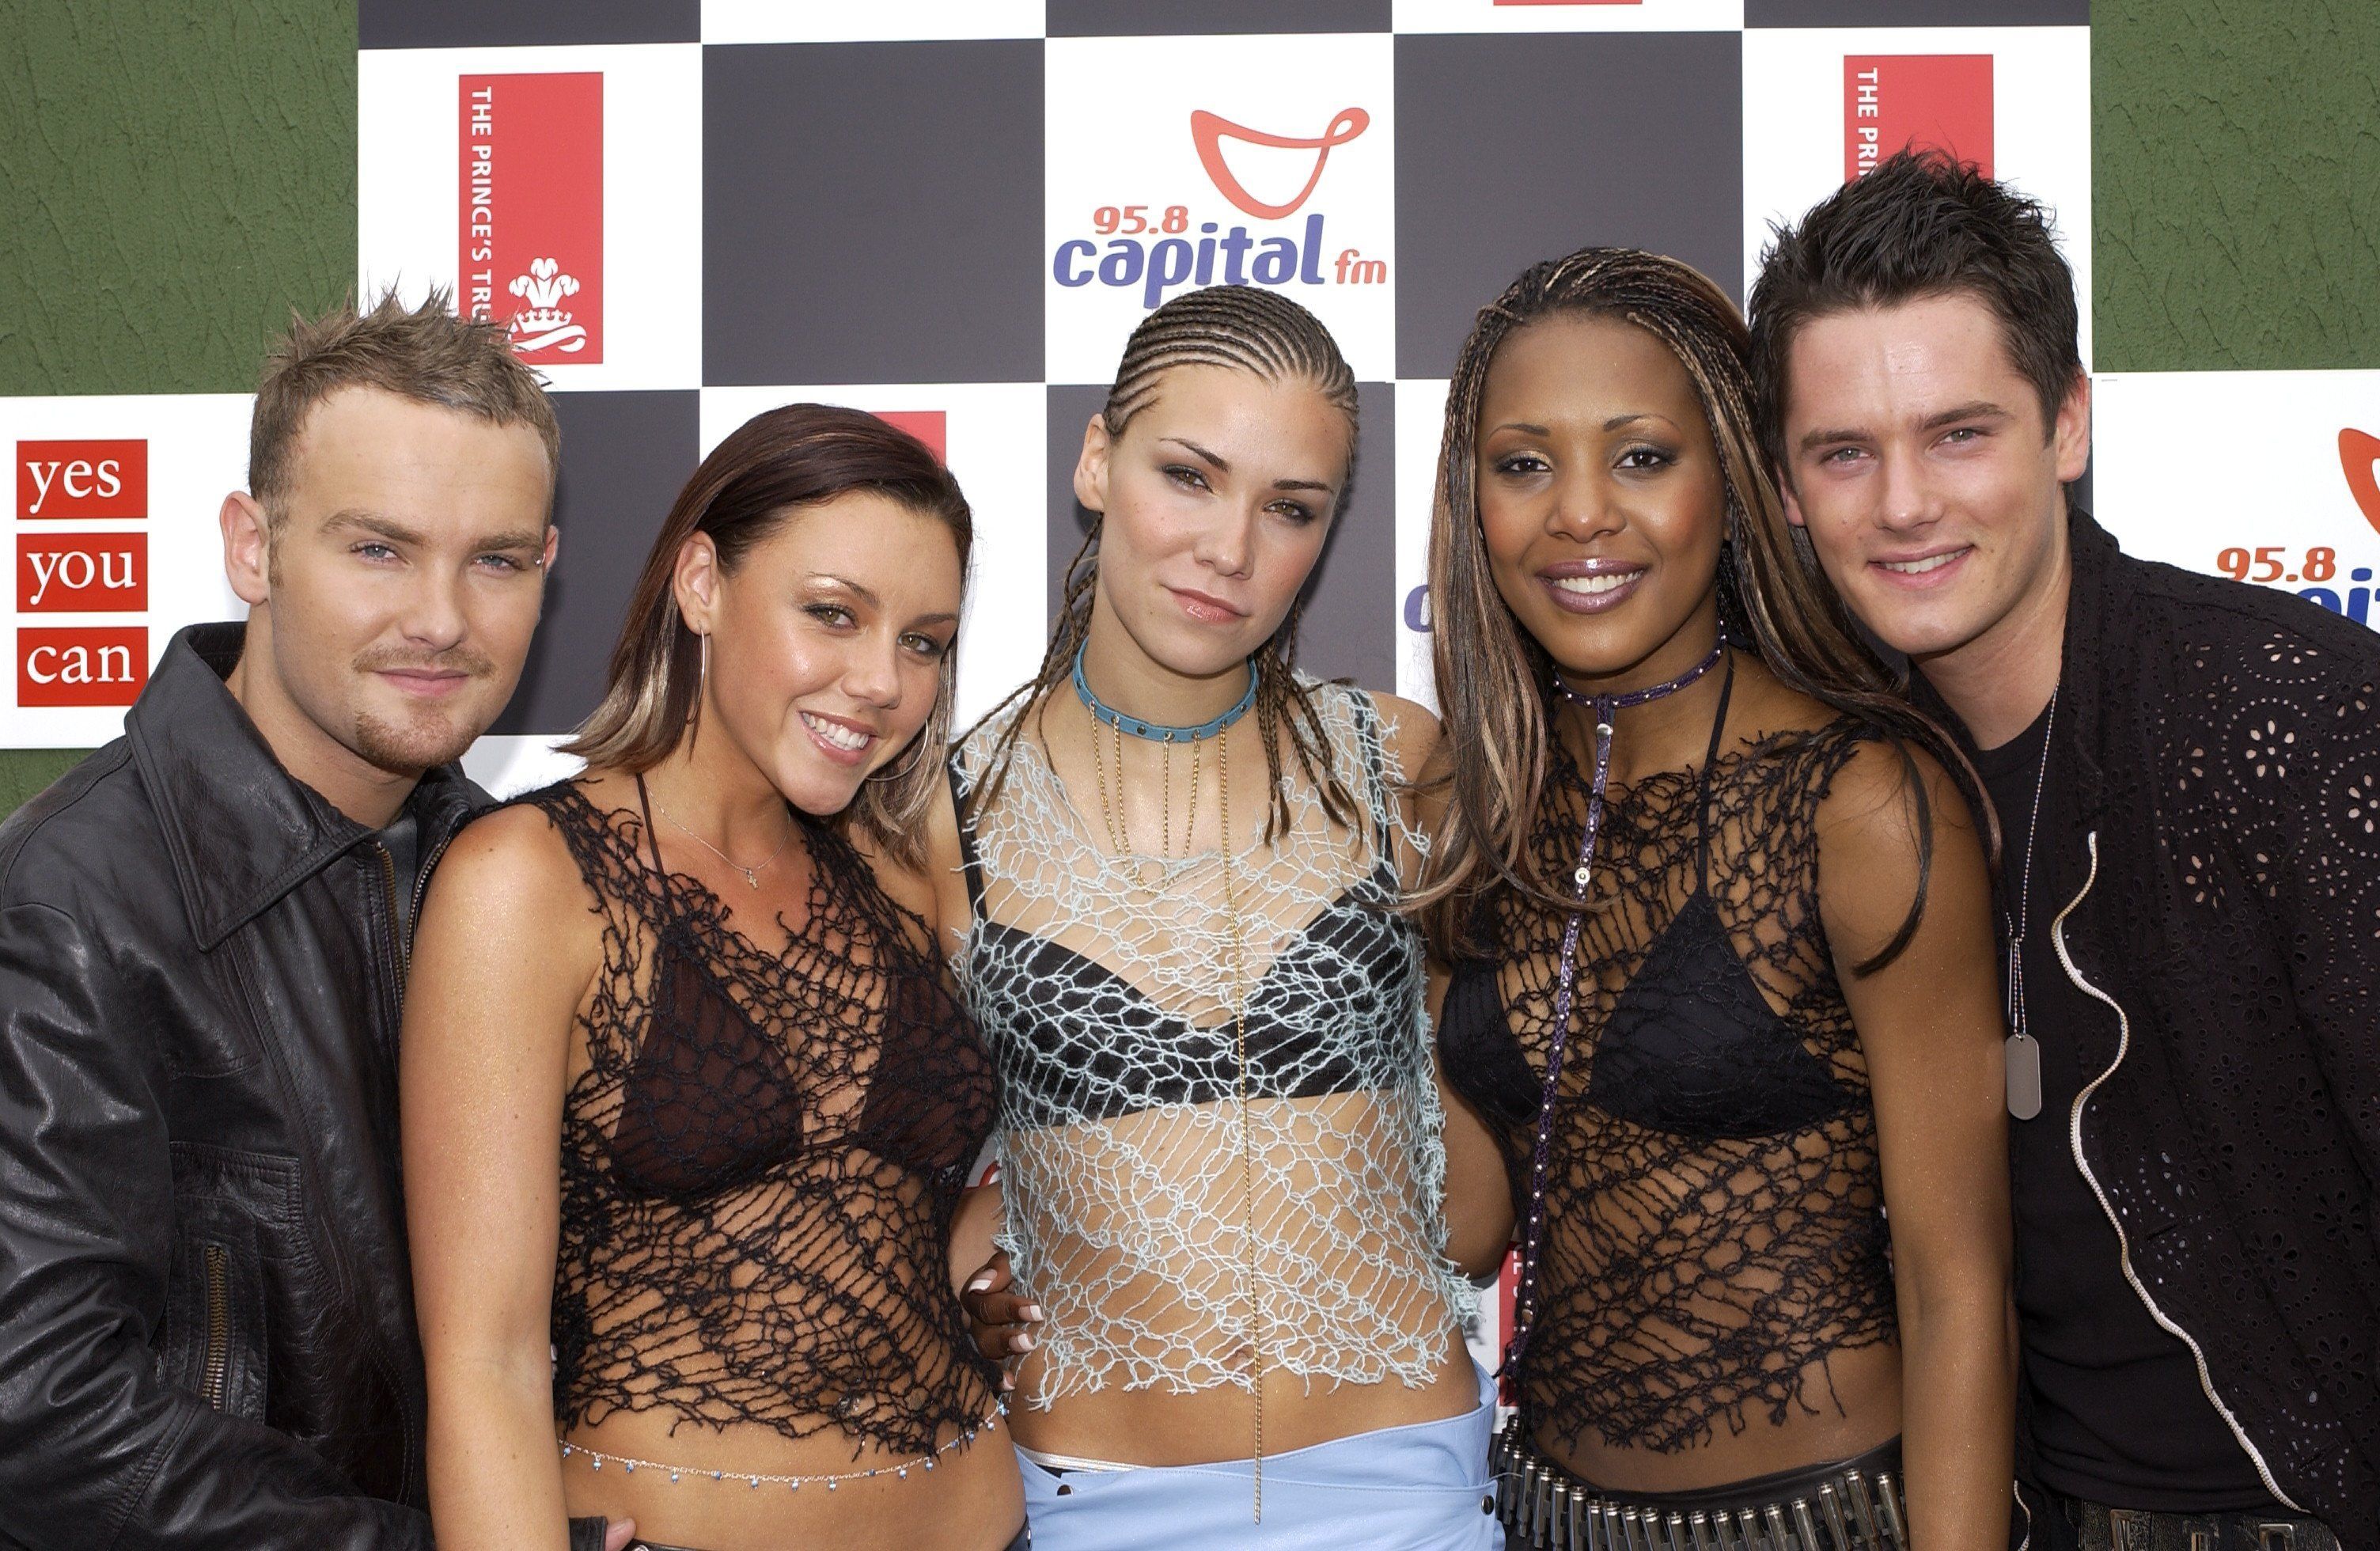 bc287cc1db Whatever happened to Liberty X  Take a look at what the Popstars runners-up  did next